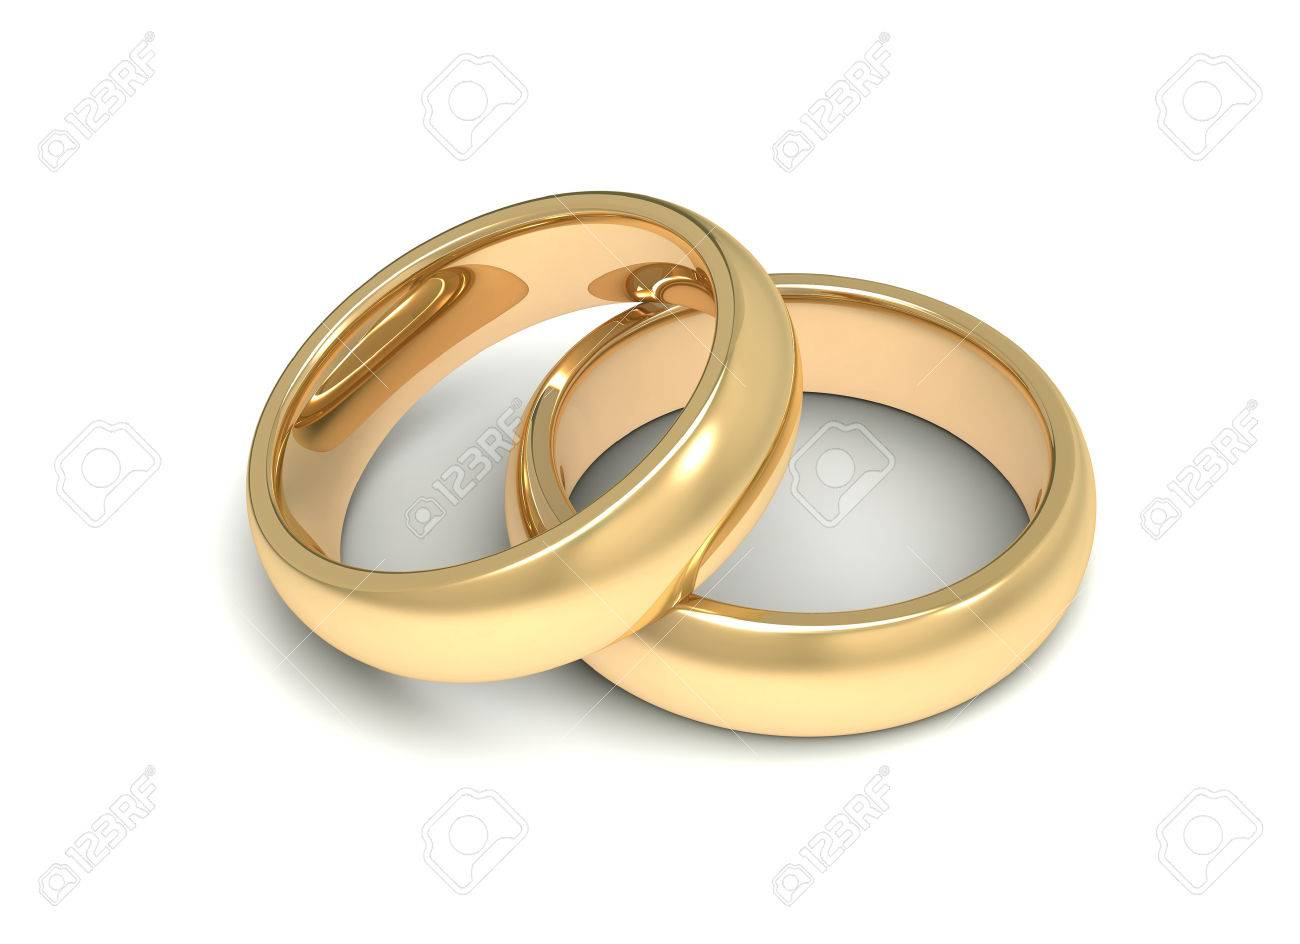 Golden Wedding Rings 3d Illustration Isolated On White Background